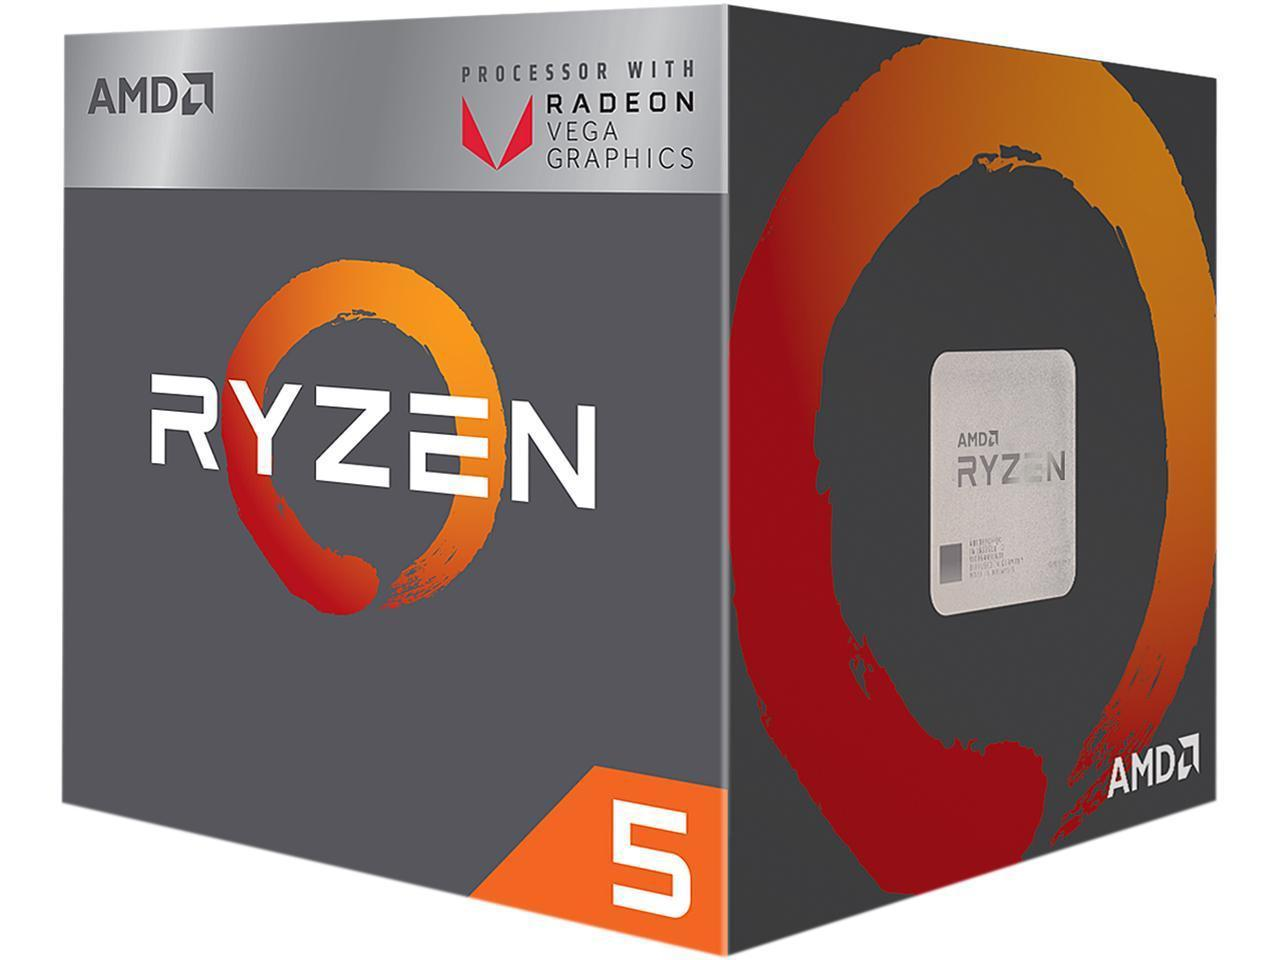 Процесор AMD RYZEN 5 2400G 4-Core 3.6 GHz (3.9 GHz Turbo) 6MB/65W/AM4, BOX